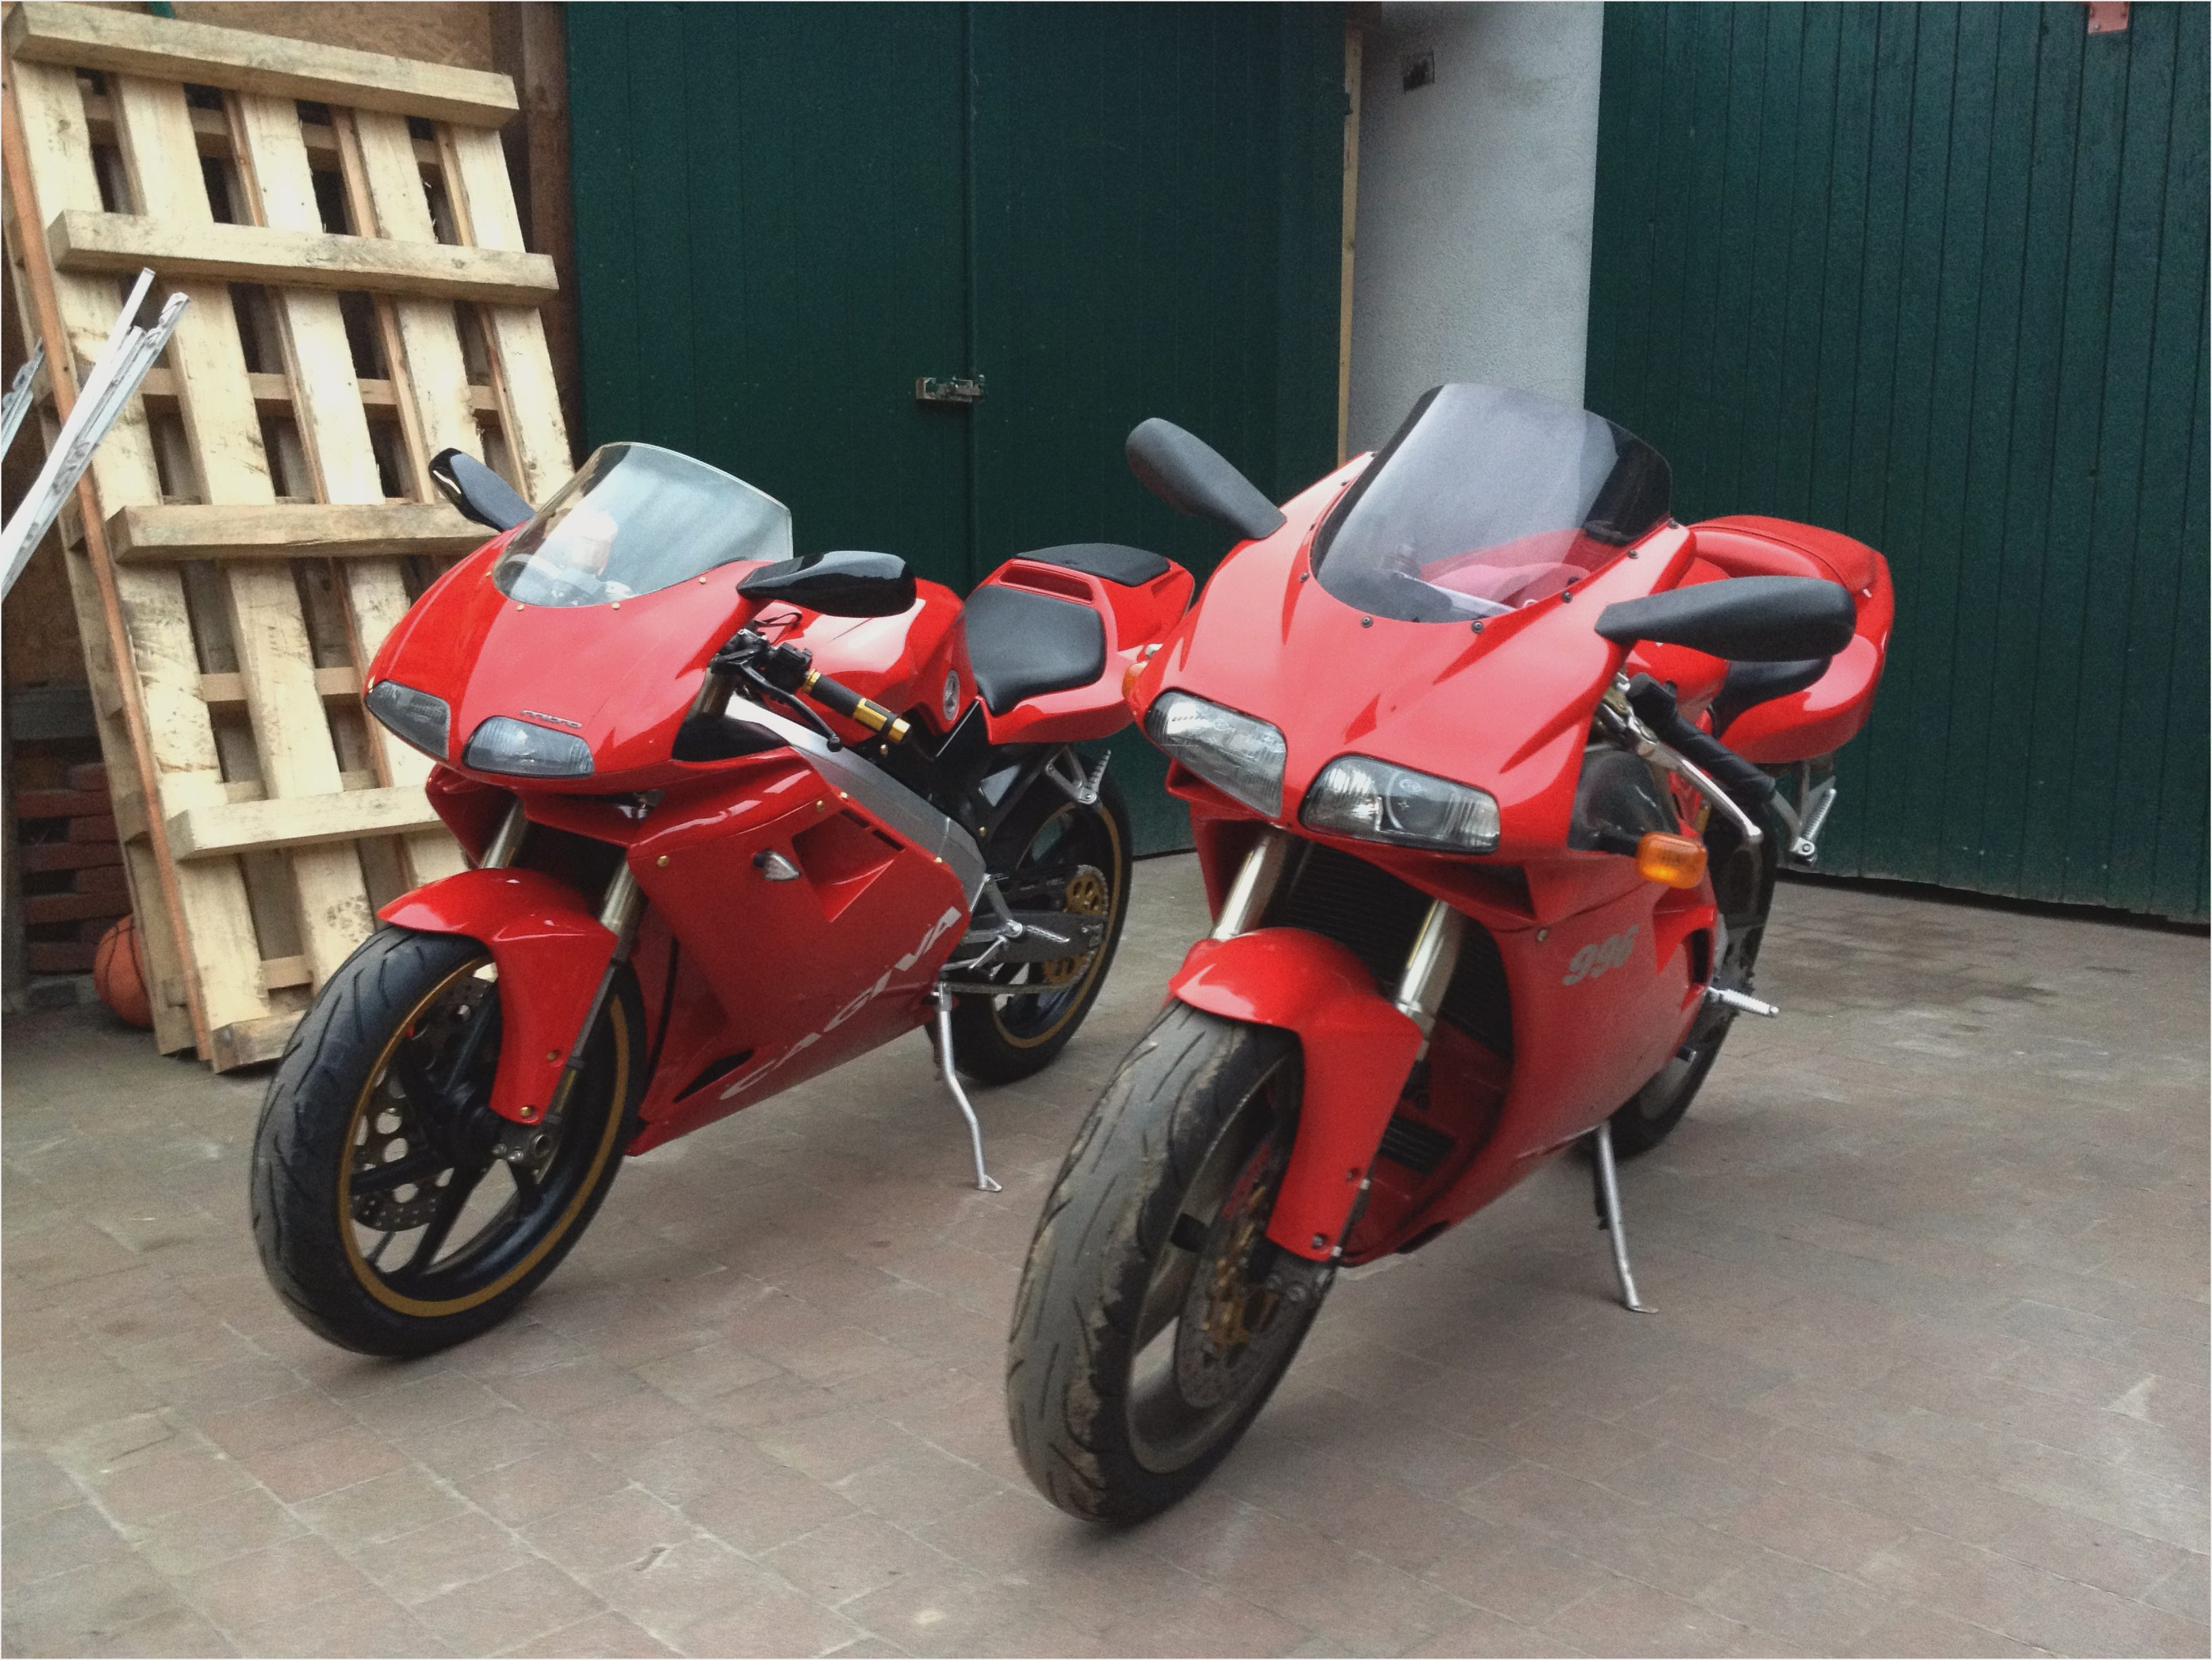 Ducati 996 2000 wallpapers #11245